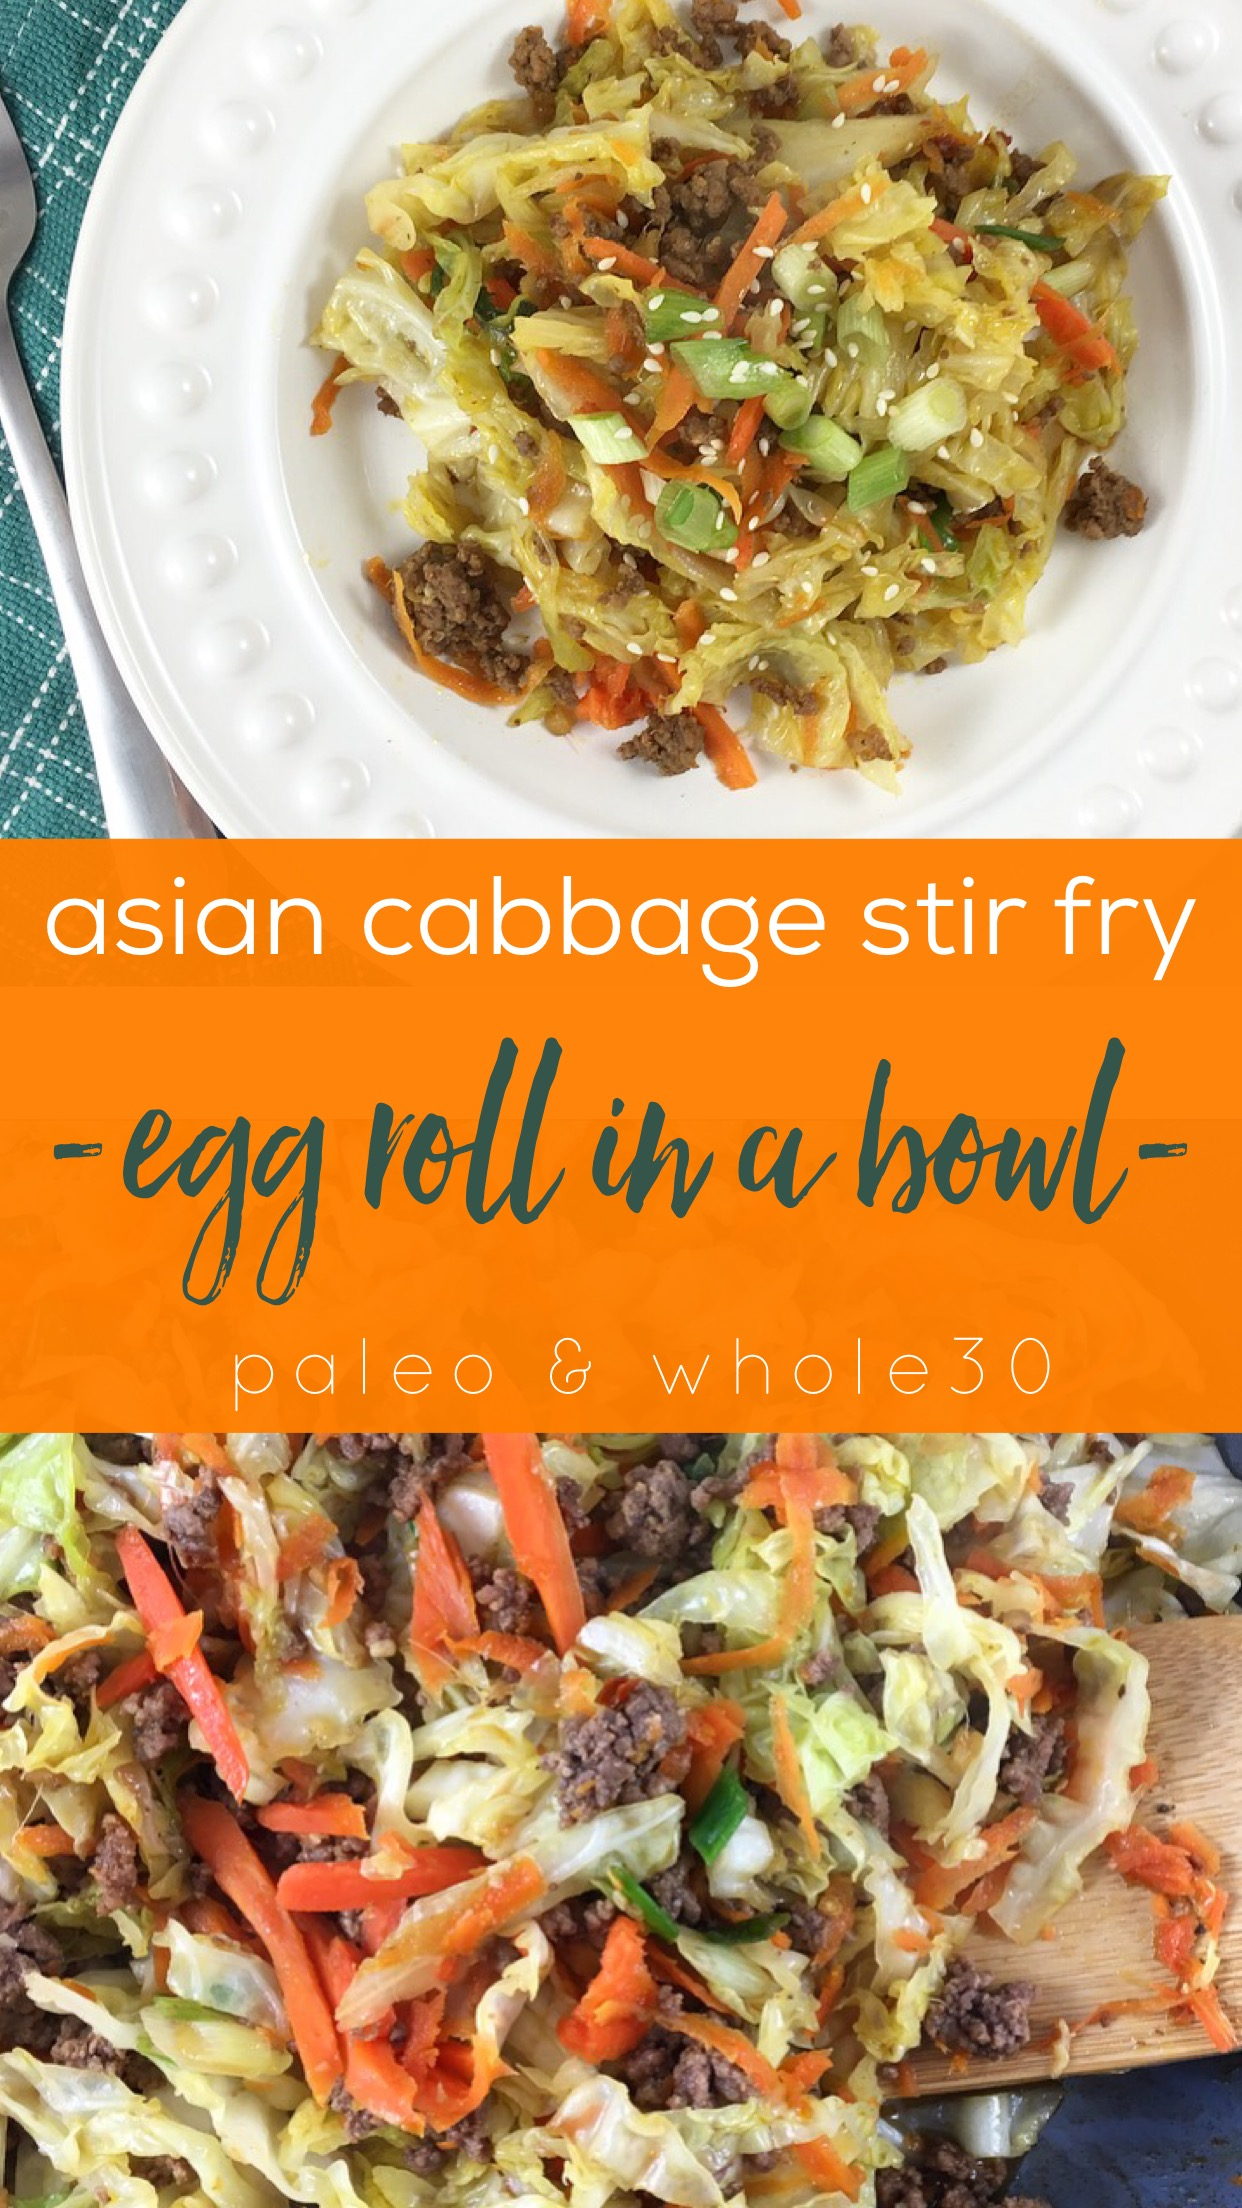 Paleo and Whole30 Egg Roll in a Bowl